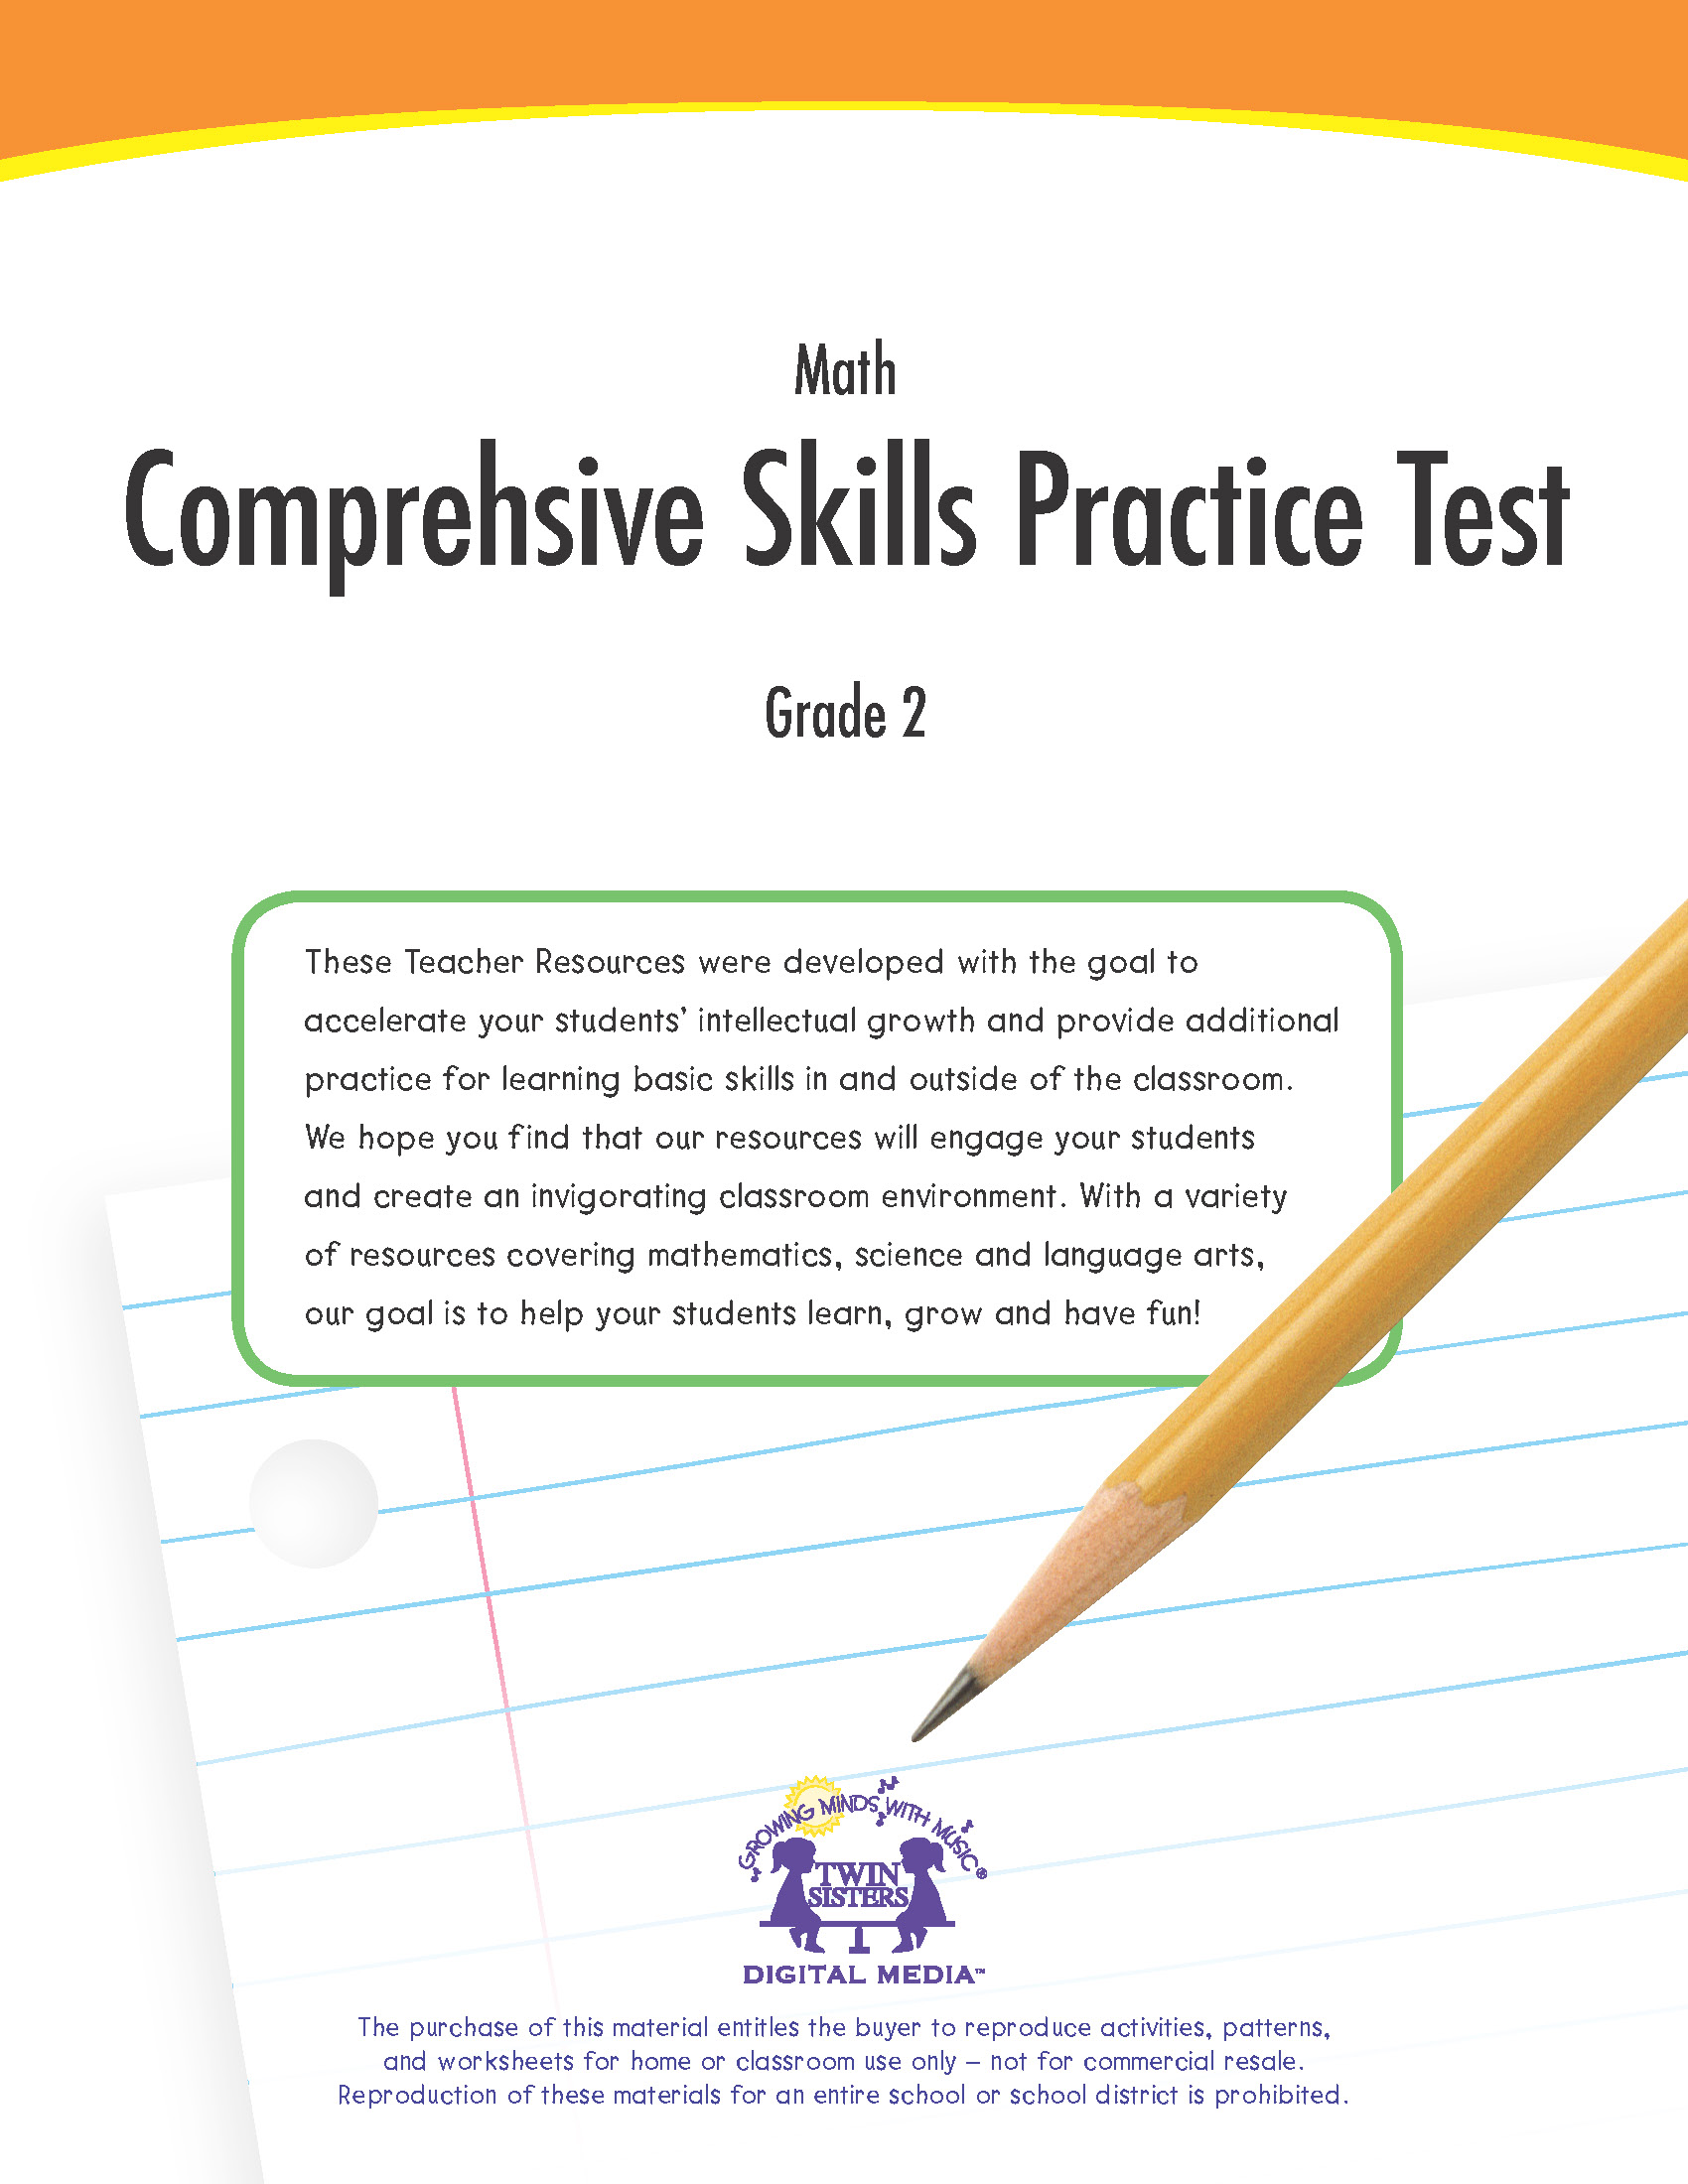 Math Grade 2 Comprehensive Skills Practice Test